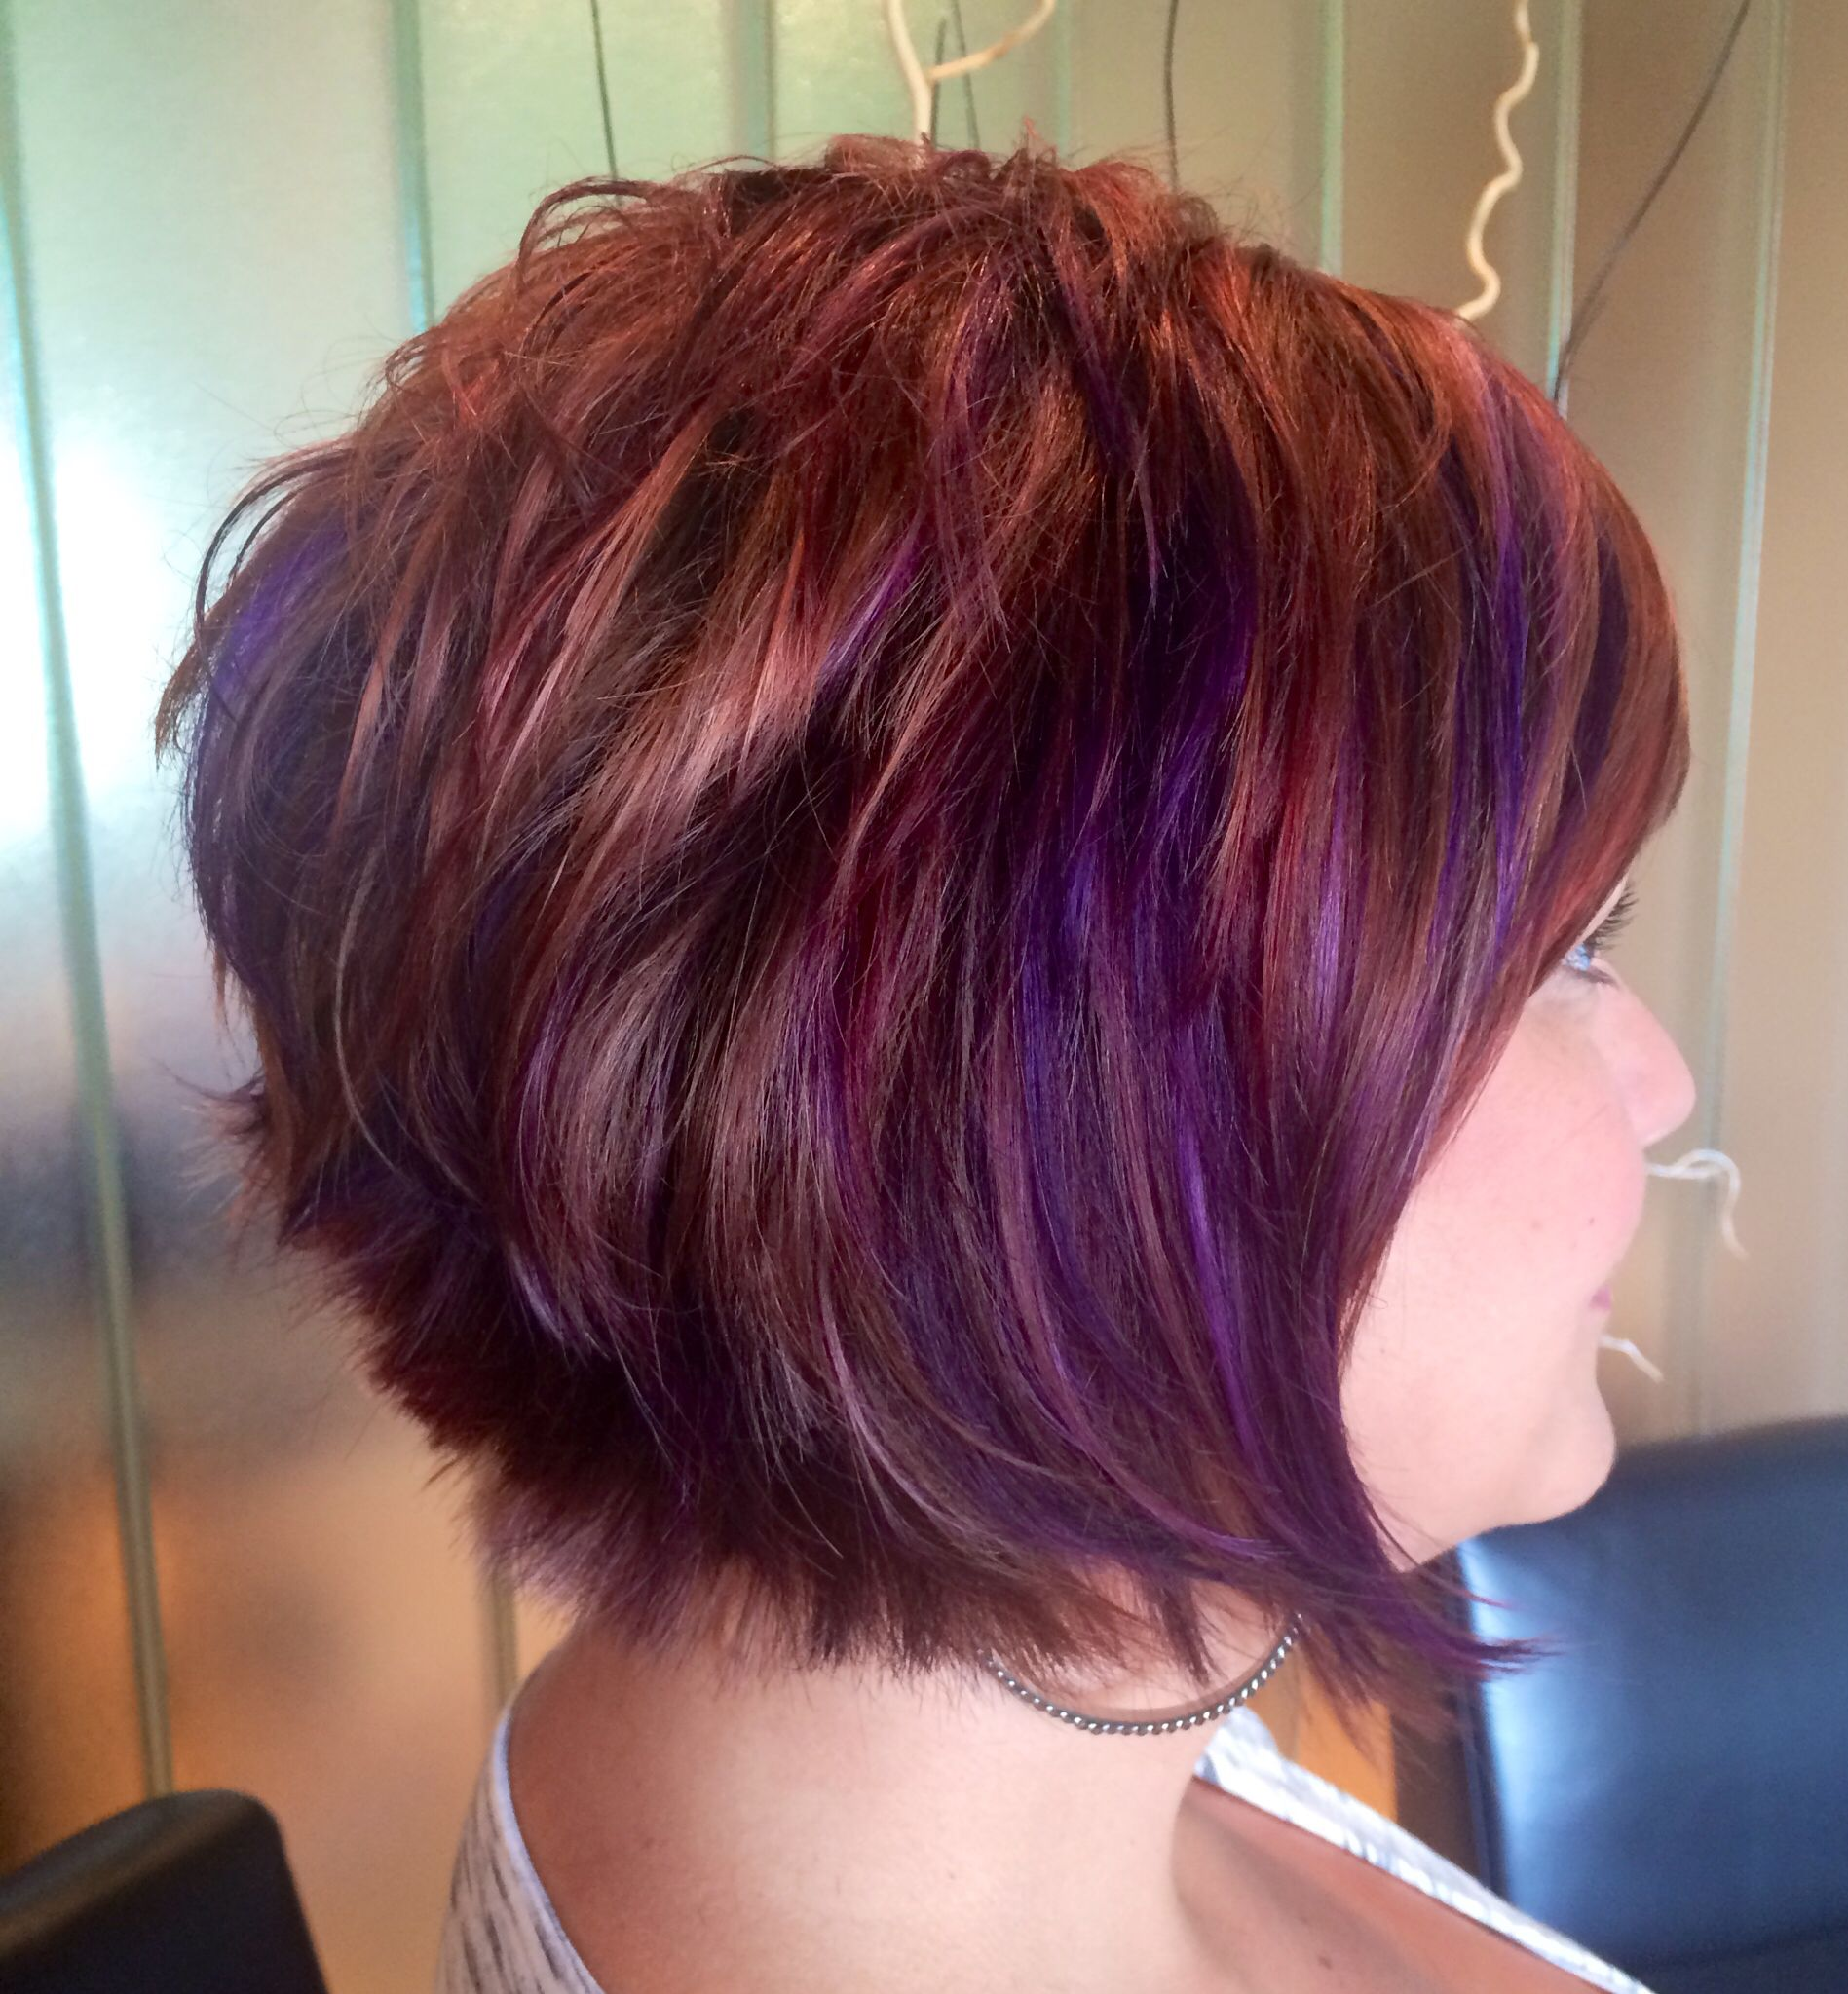 Purplehair Copper Gold Red Hi Lights With Purple Panels Shorthair Hair Styles Short Hair Styles Hair Highlights